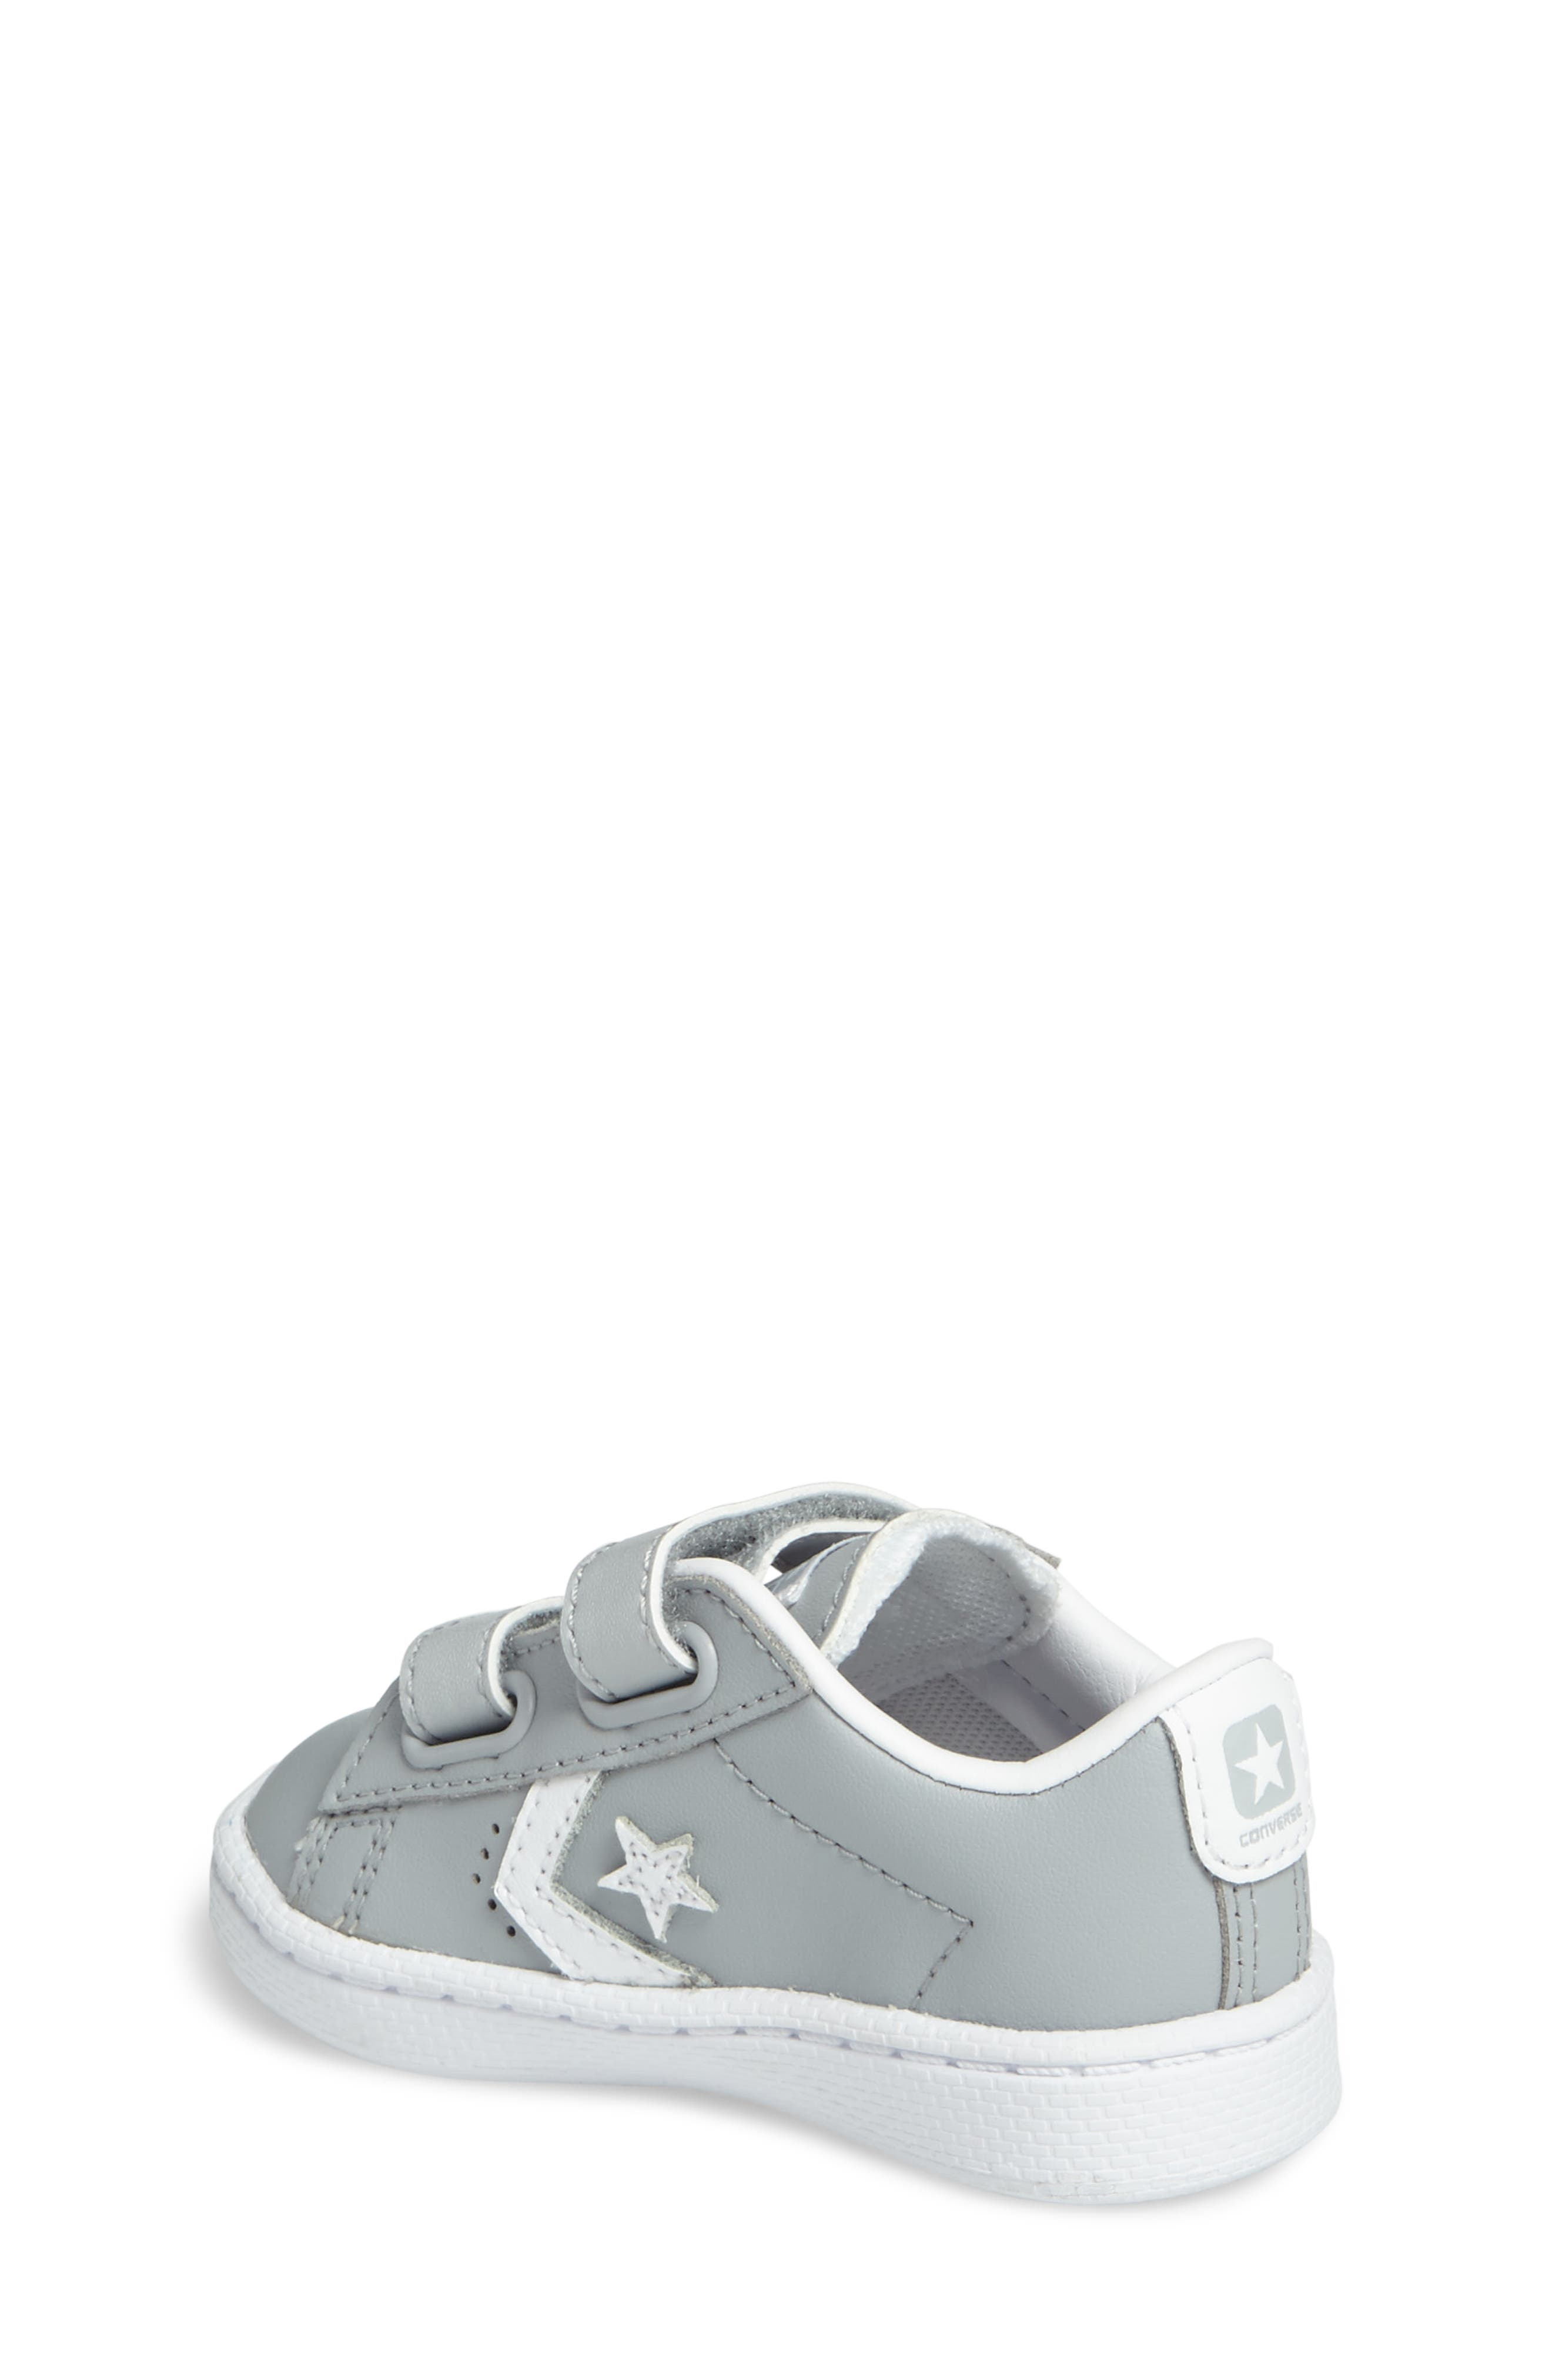 Pro Leather Low Top Sneaker,                             Alternate thumbnail 2, color,                             097